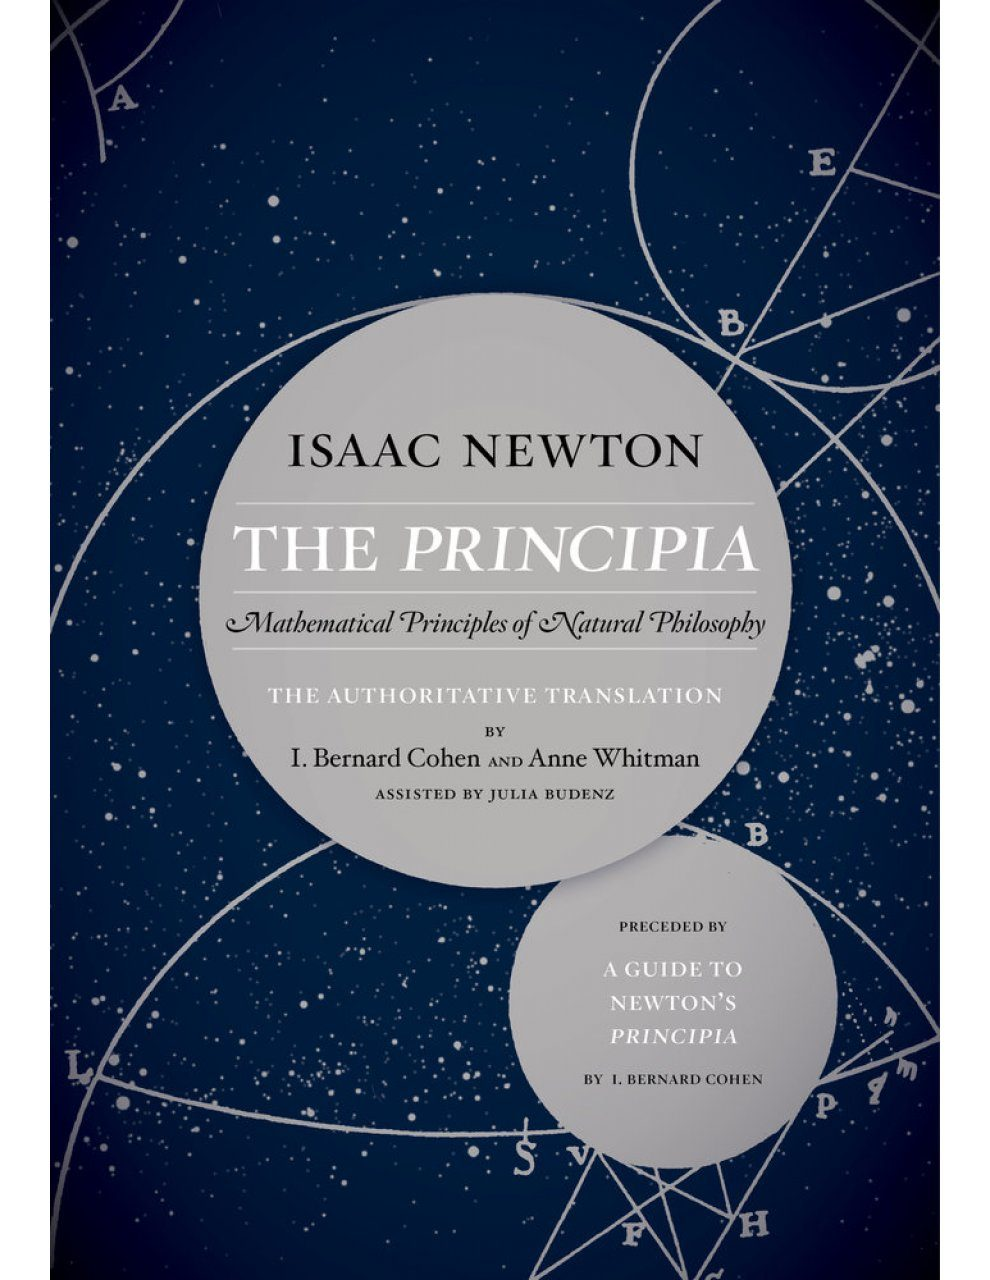 The Principia: Mathematical Principles of Natural Philosophy (The Authoritative Translation and Guide)